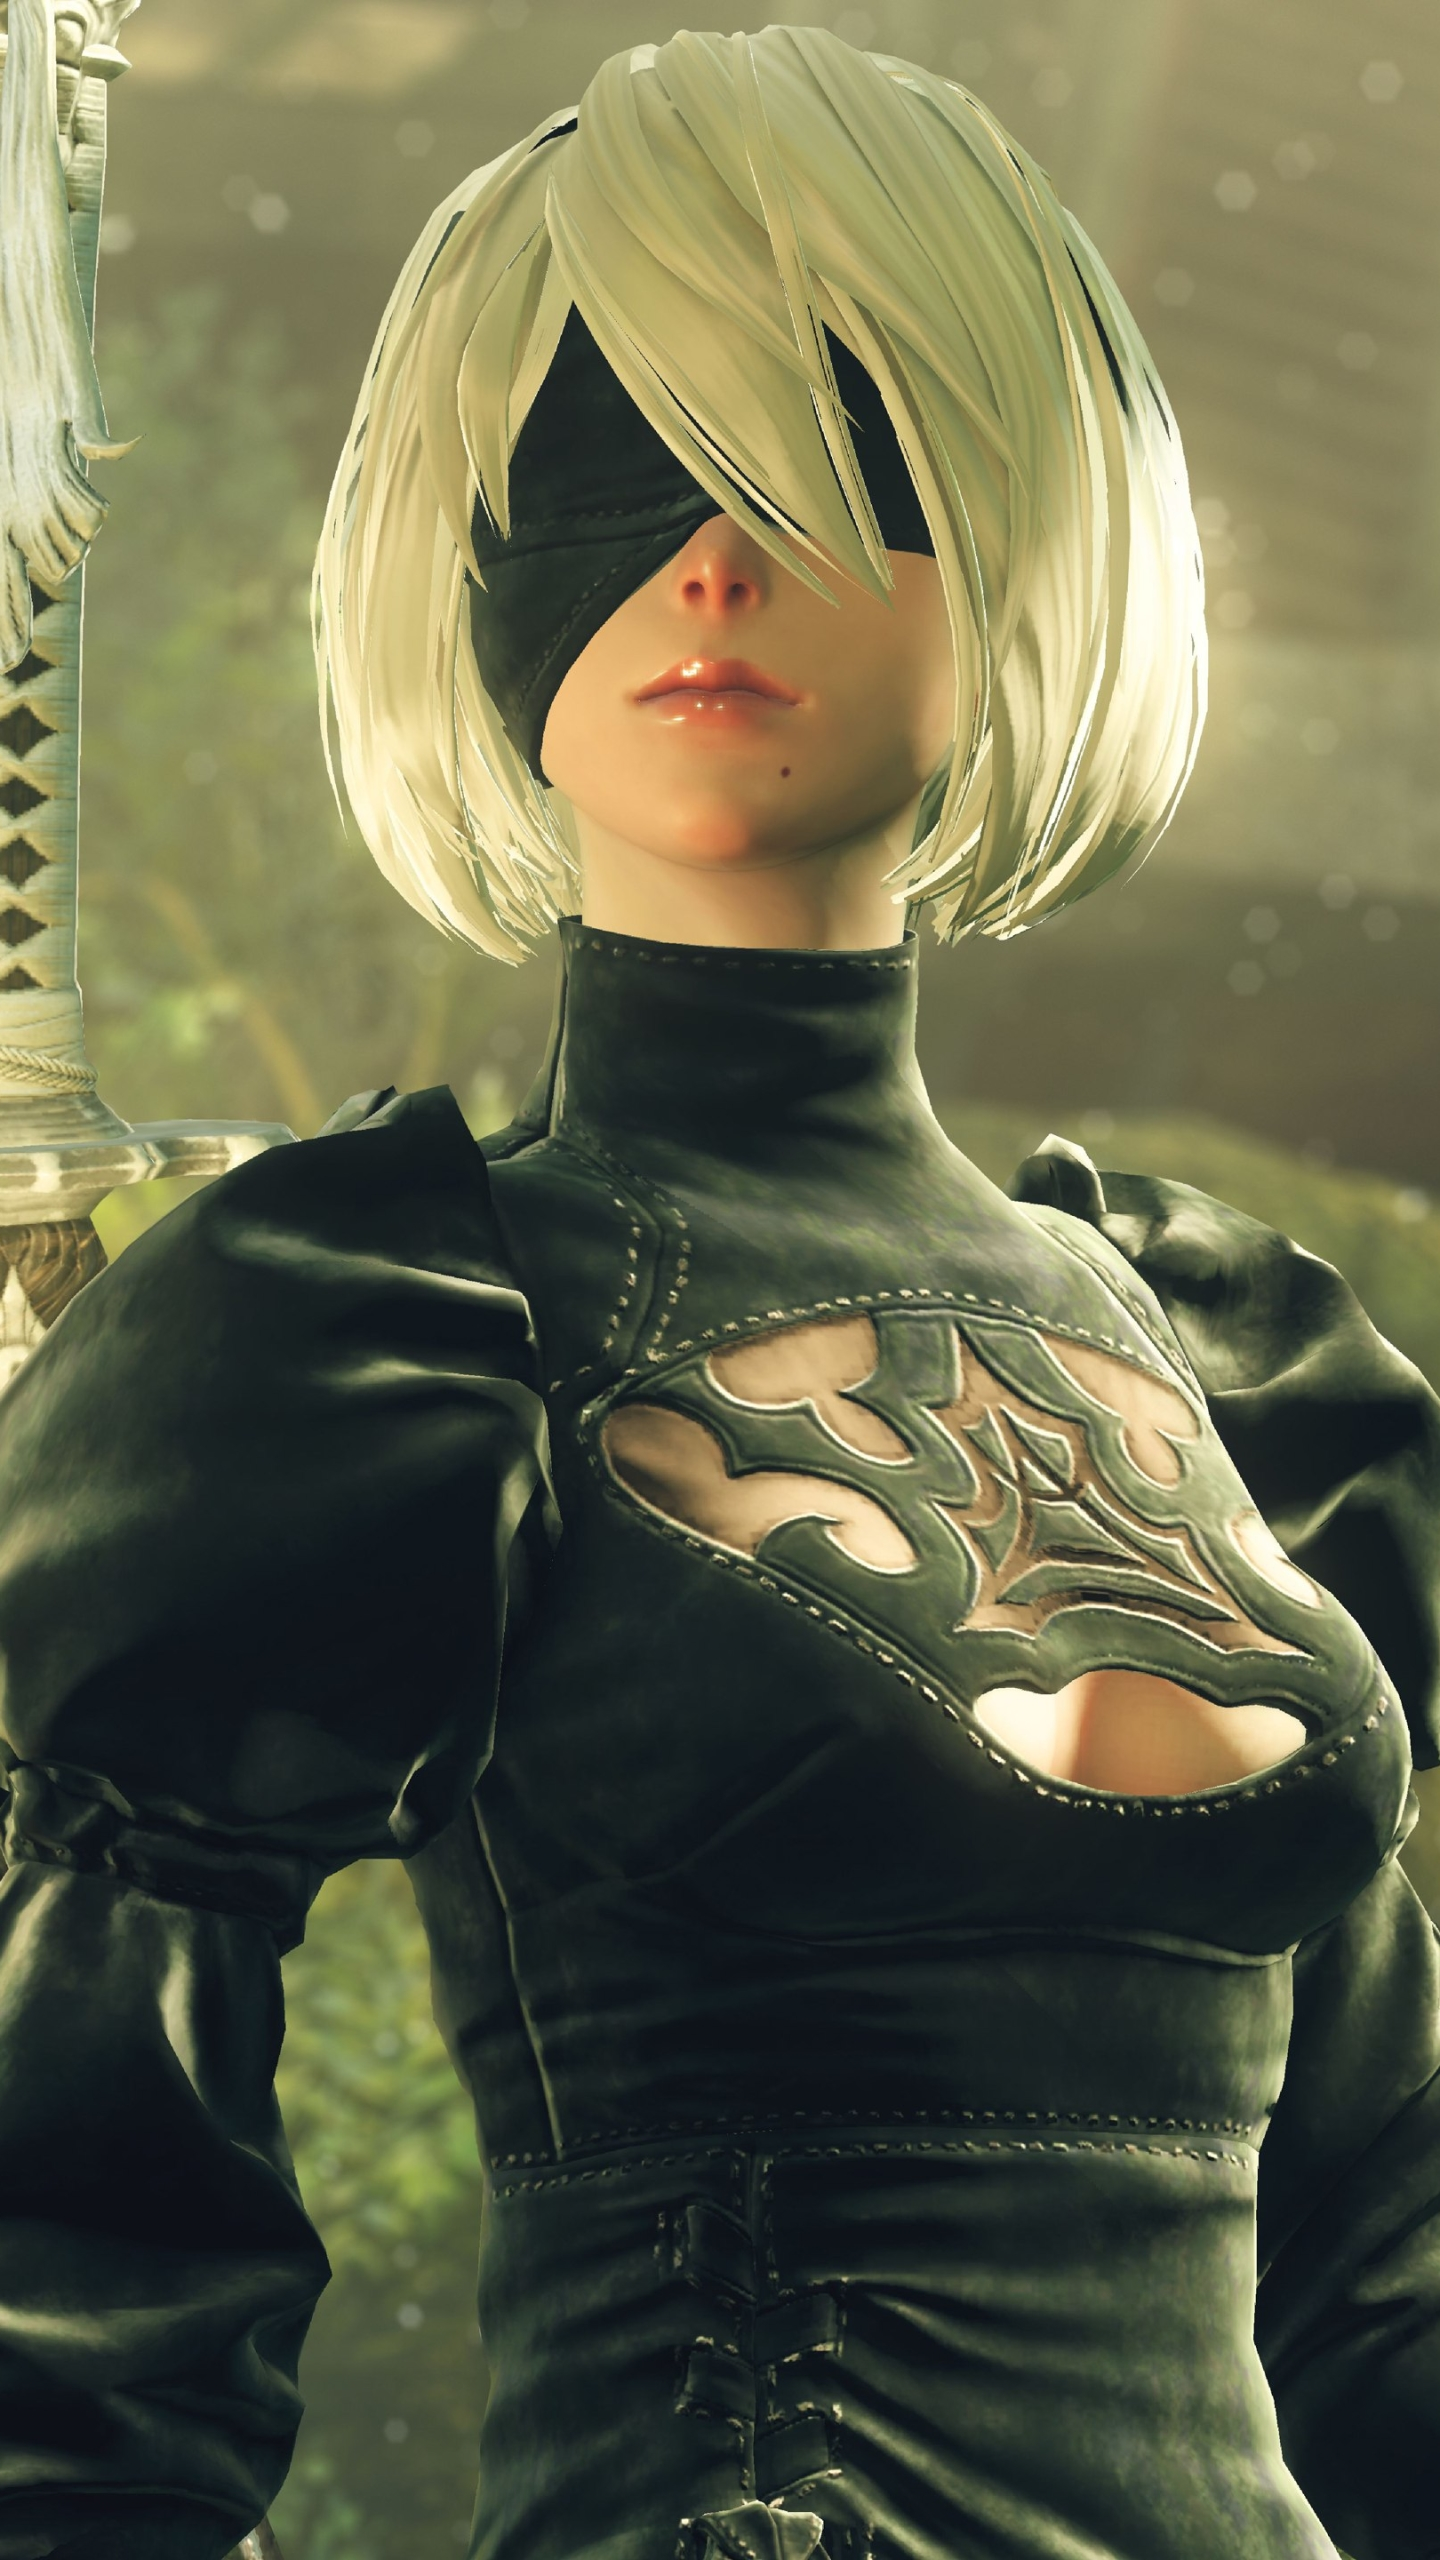 Video Game Nier Automata 1440x2560 Wallpaper Id 656129